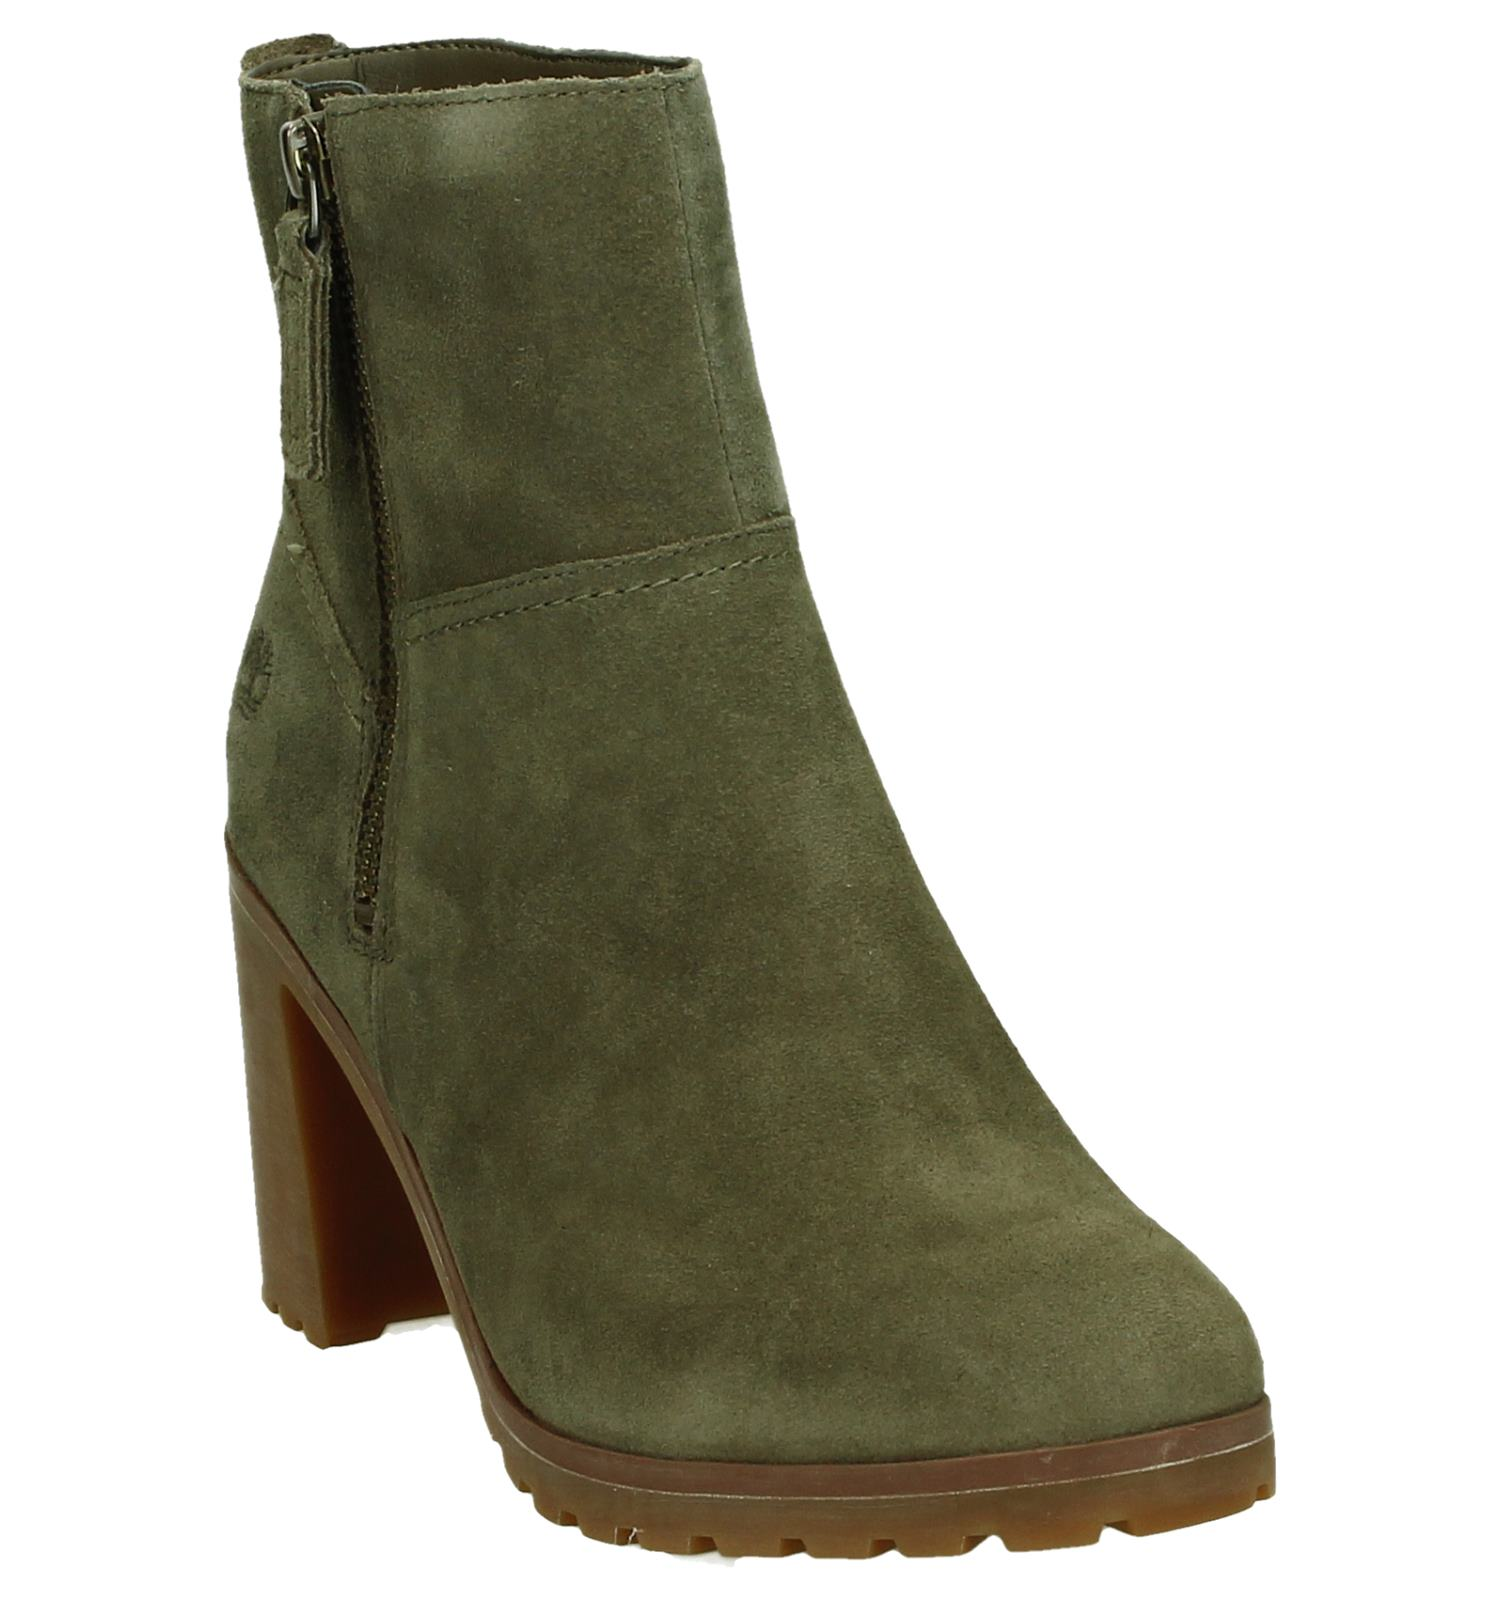 Timberland Allington dames veterboots groen